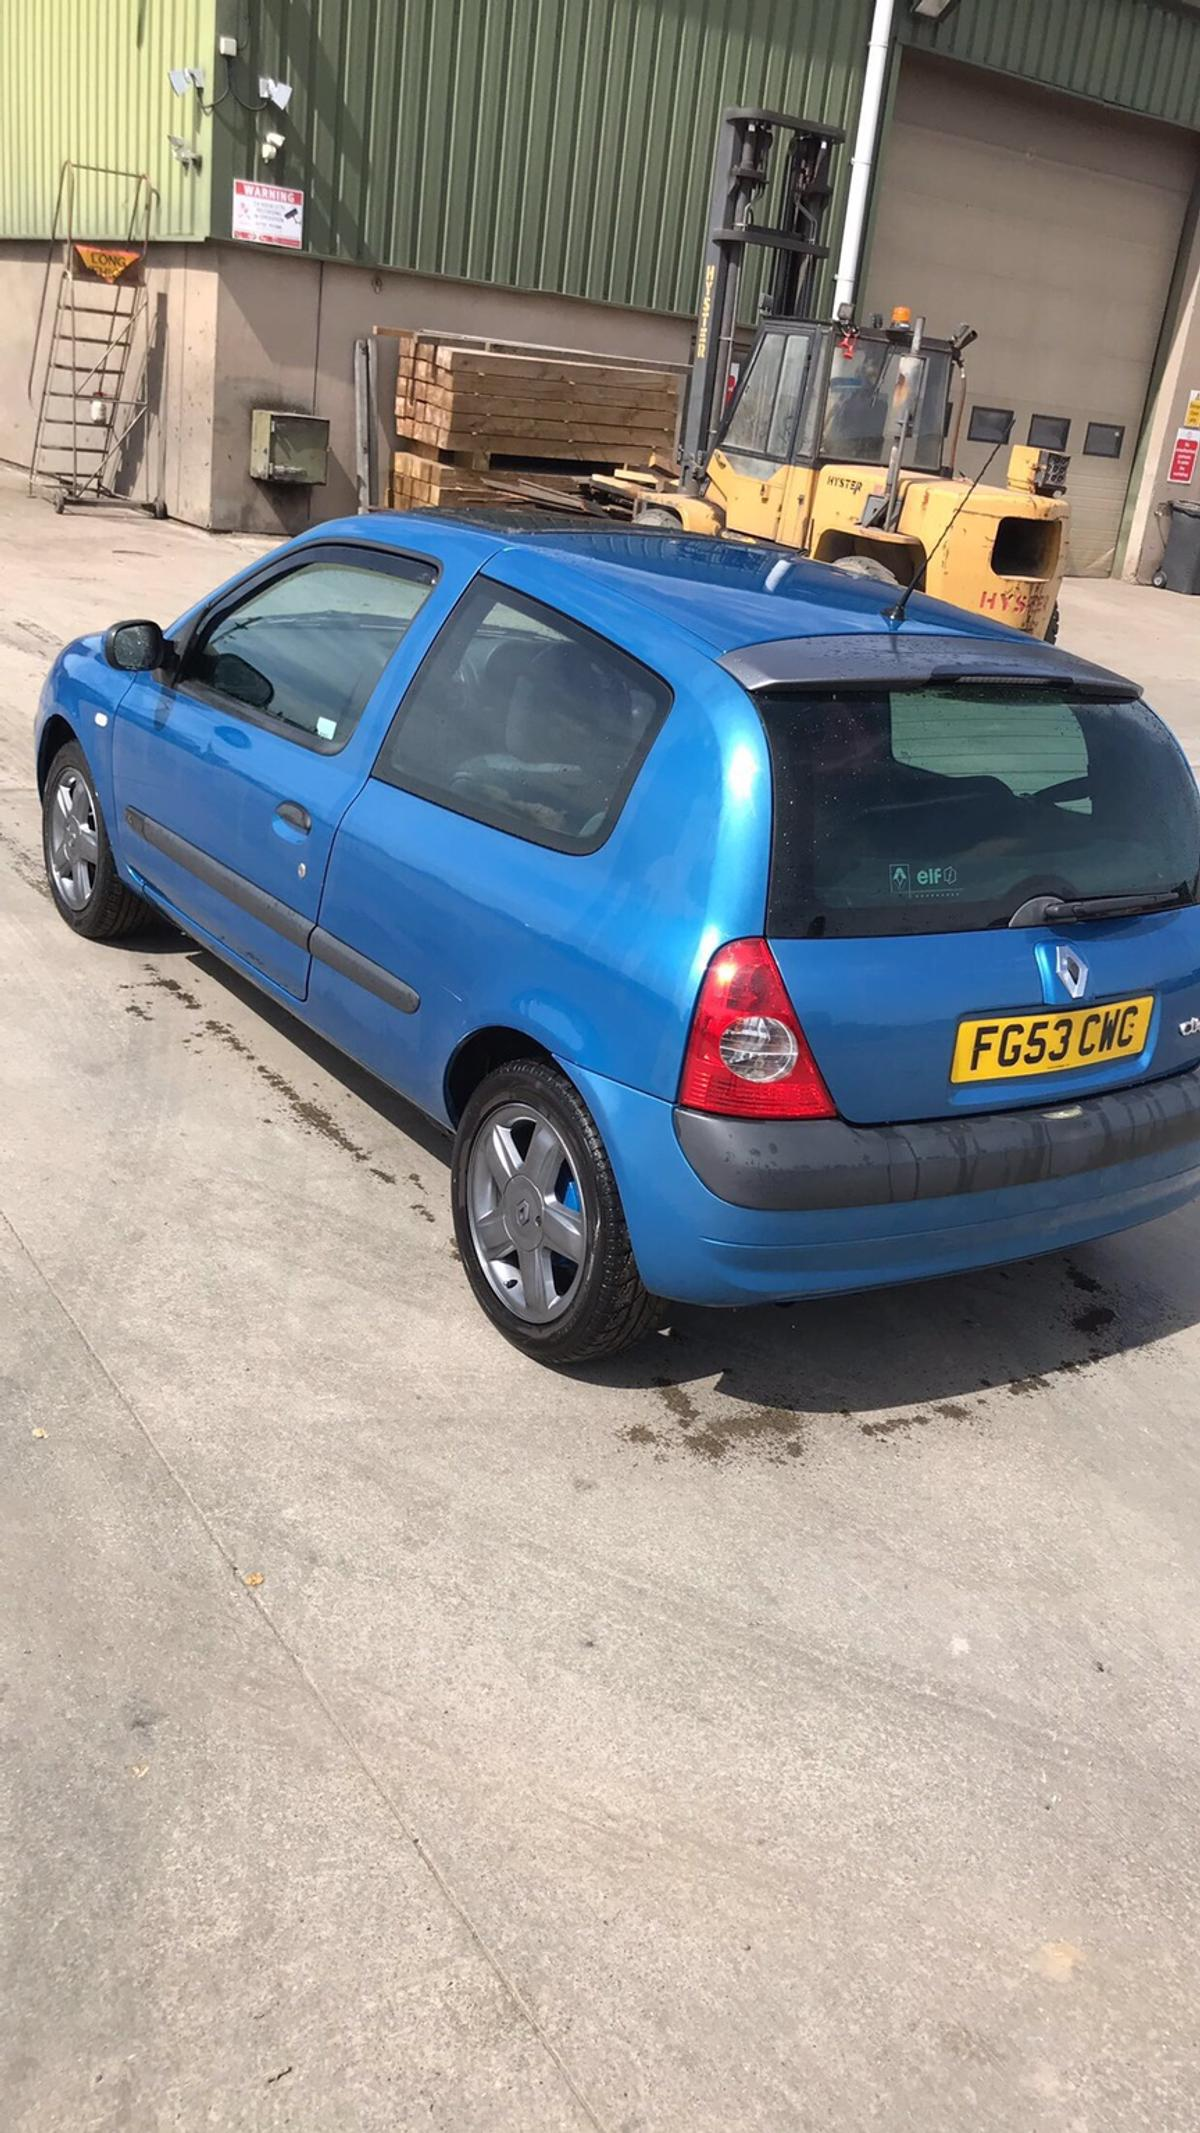 Renault Clio in Selby for £500 00 for sale - Shpock